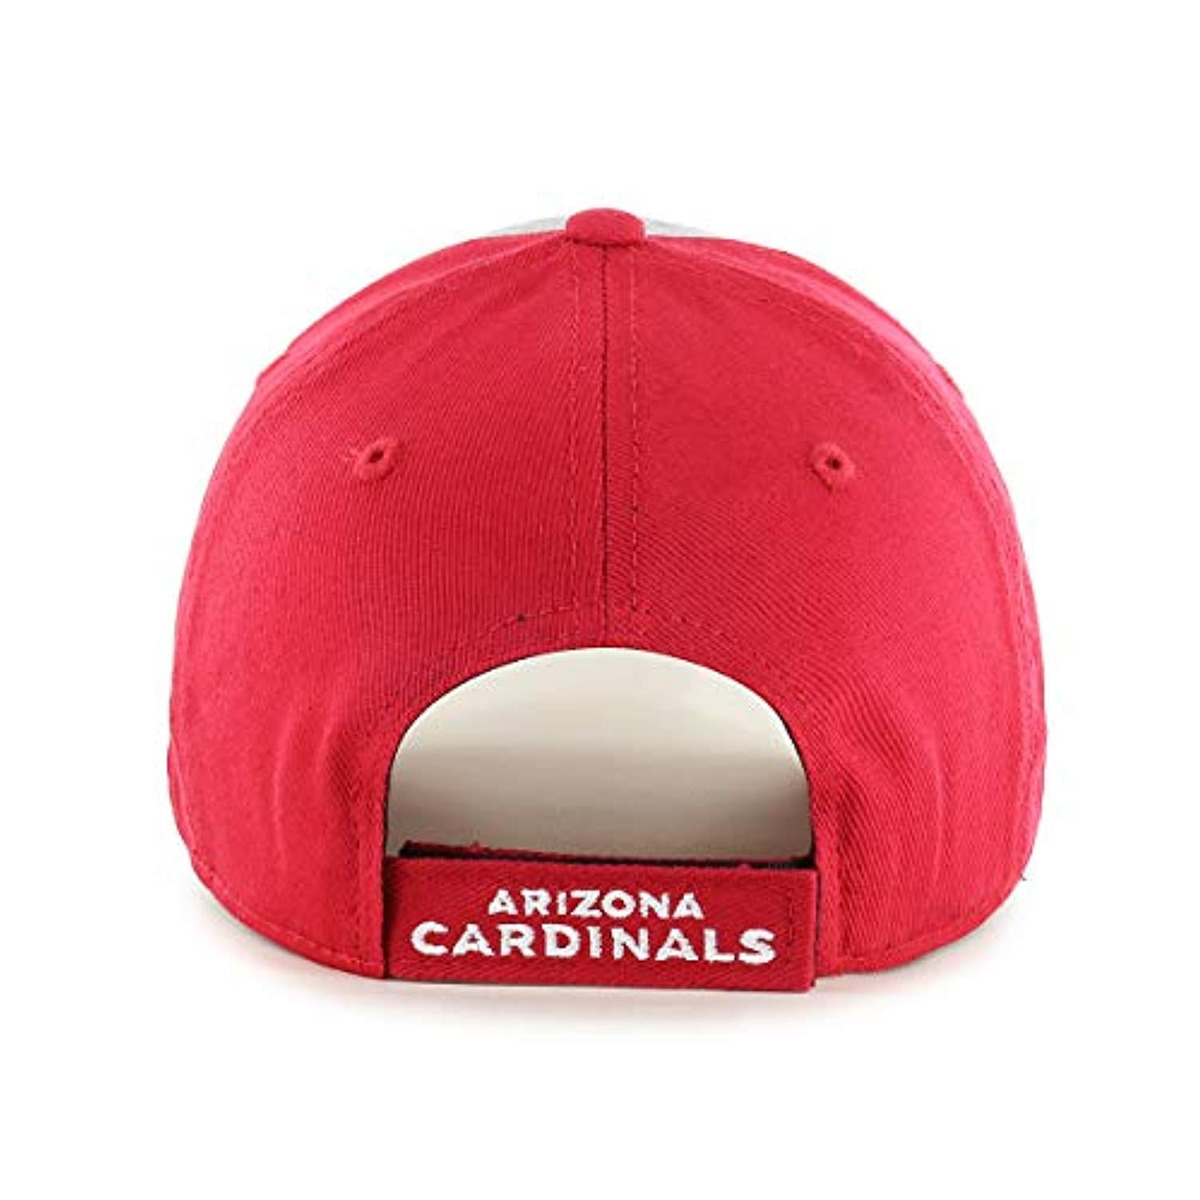 a6c65a3ae Ots Nfl Adult Men S Essential All-star Adjustable Hat - $ 1,257.21 ...